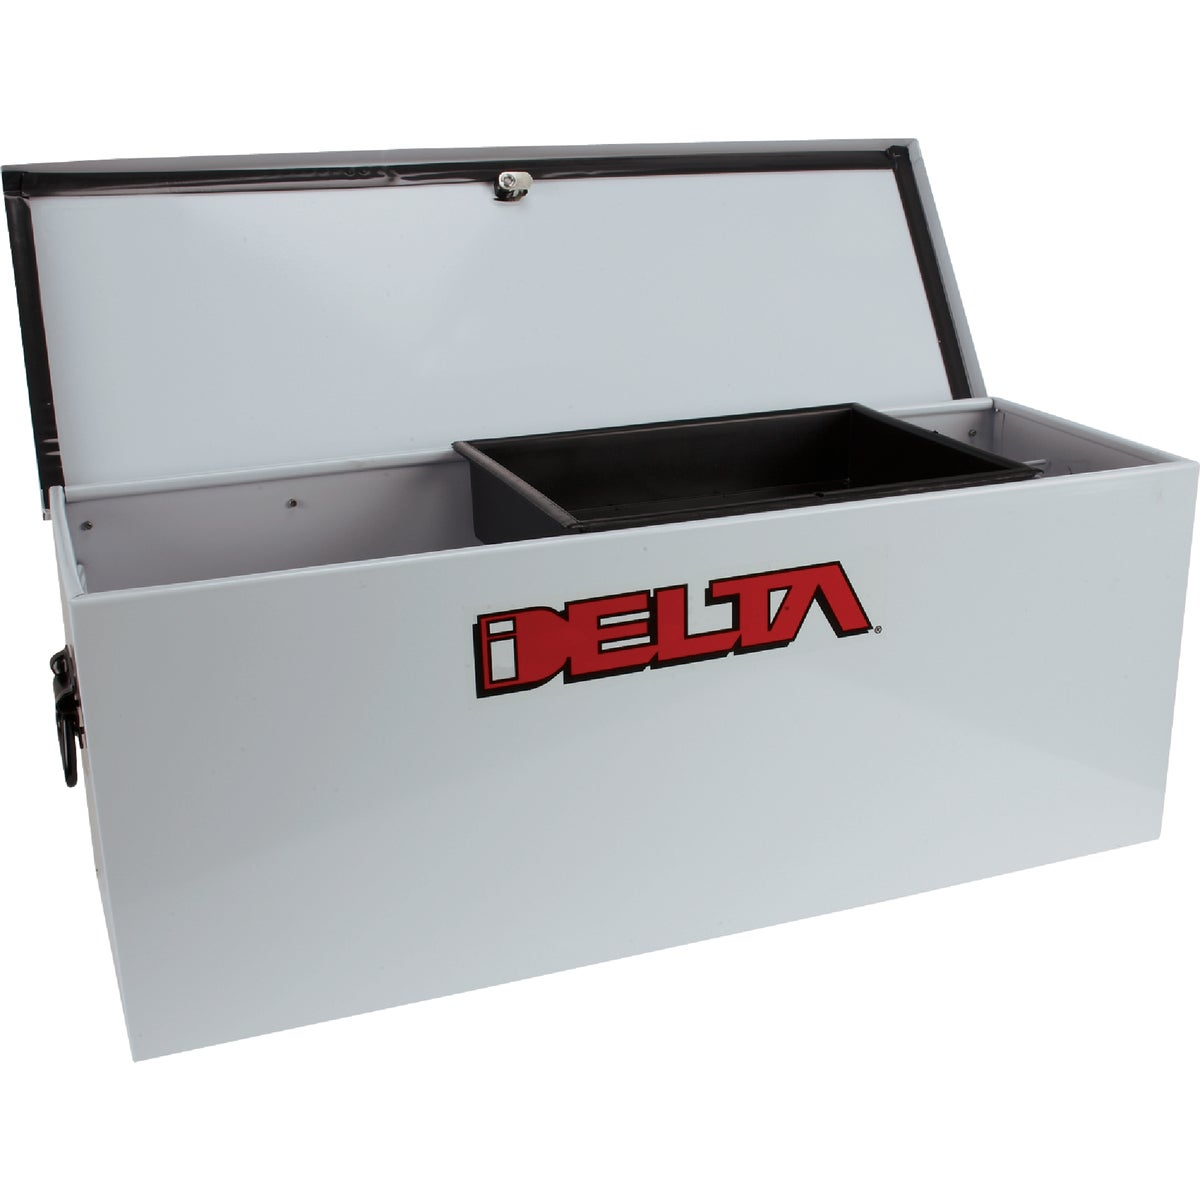 STL TRUCK STORAGE BOX - 810000 by Delta Consolidated